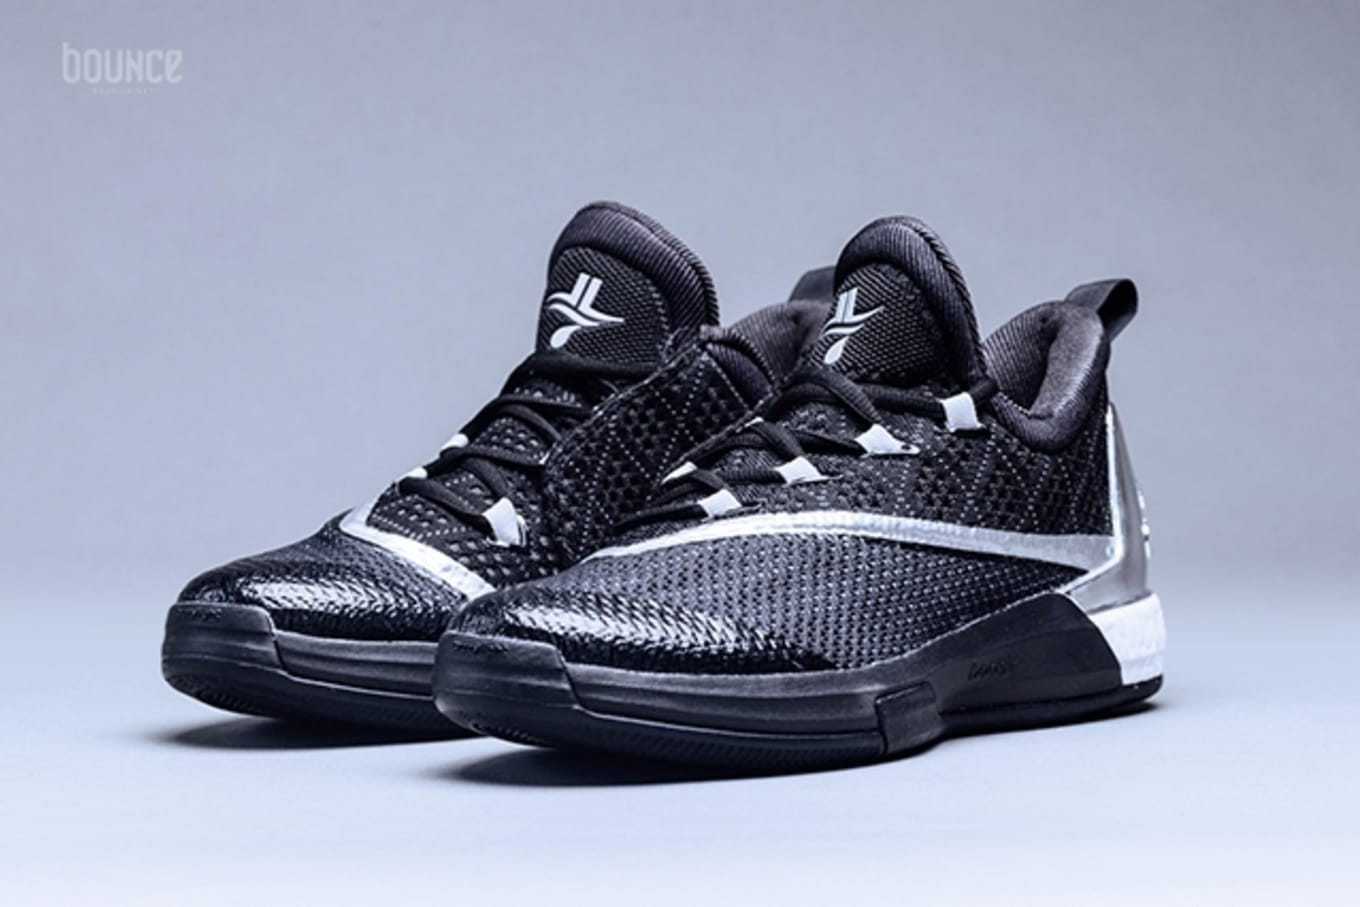 the latest 58ba9 899e0 adidas Crazylight Boost 2.5 Jeremy Lin Black PE (1)